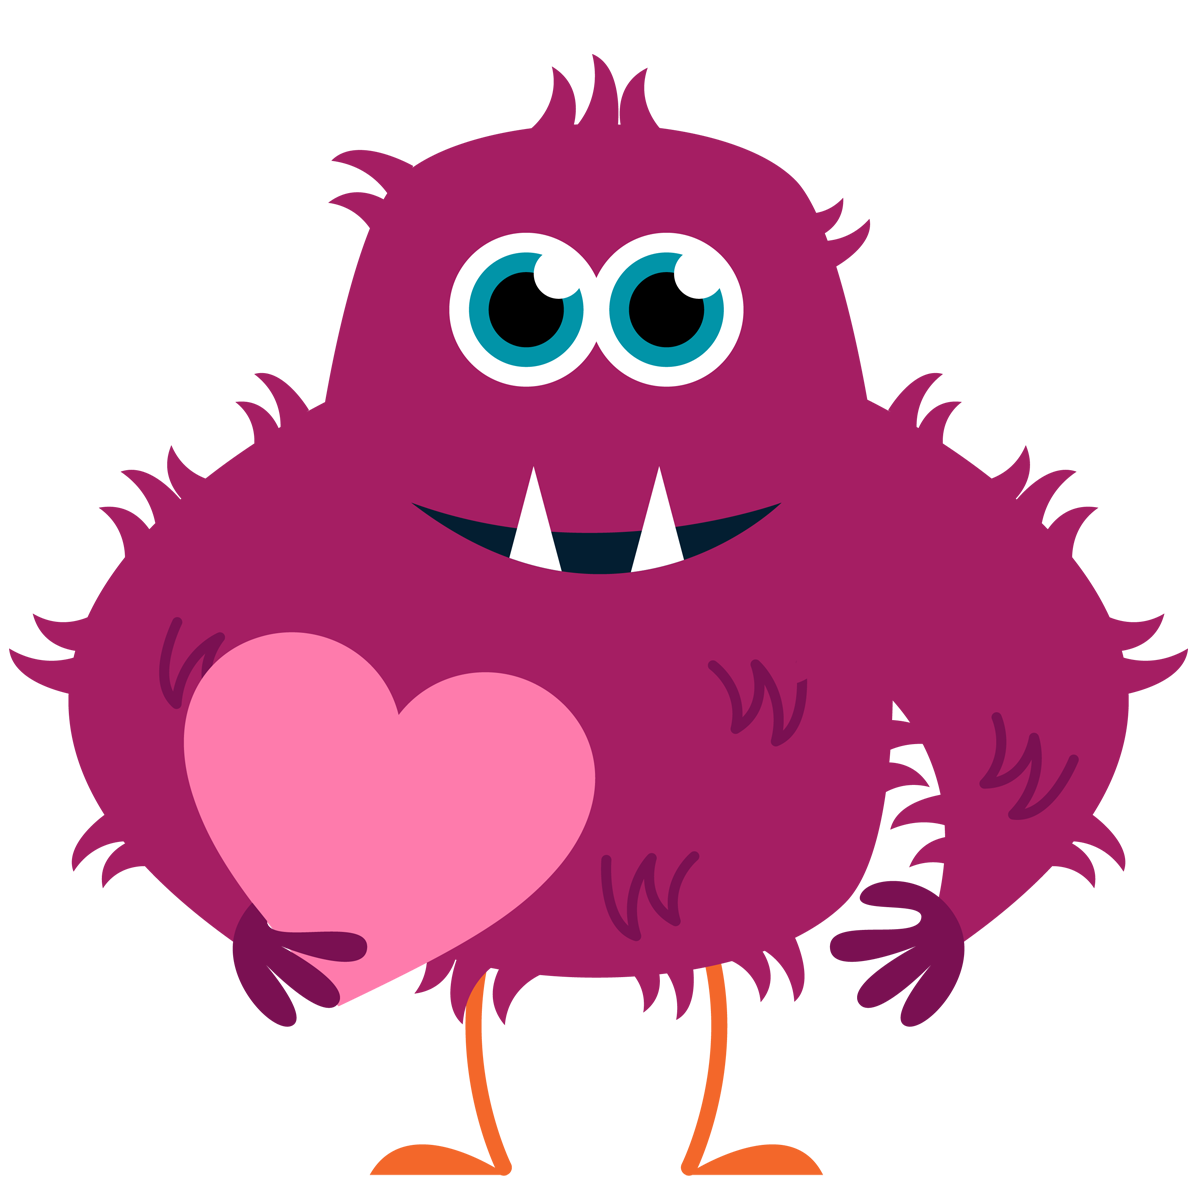 1000  images about valentines on Pintere-1000  images about valentines on Pinterest   Valentine cookies, Animated clipart and Clip art-9